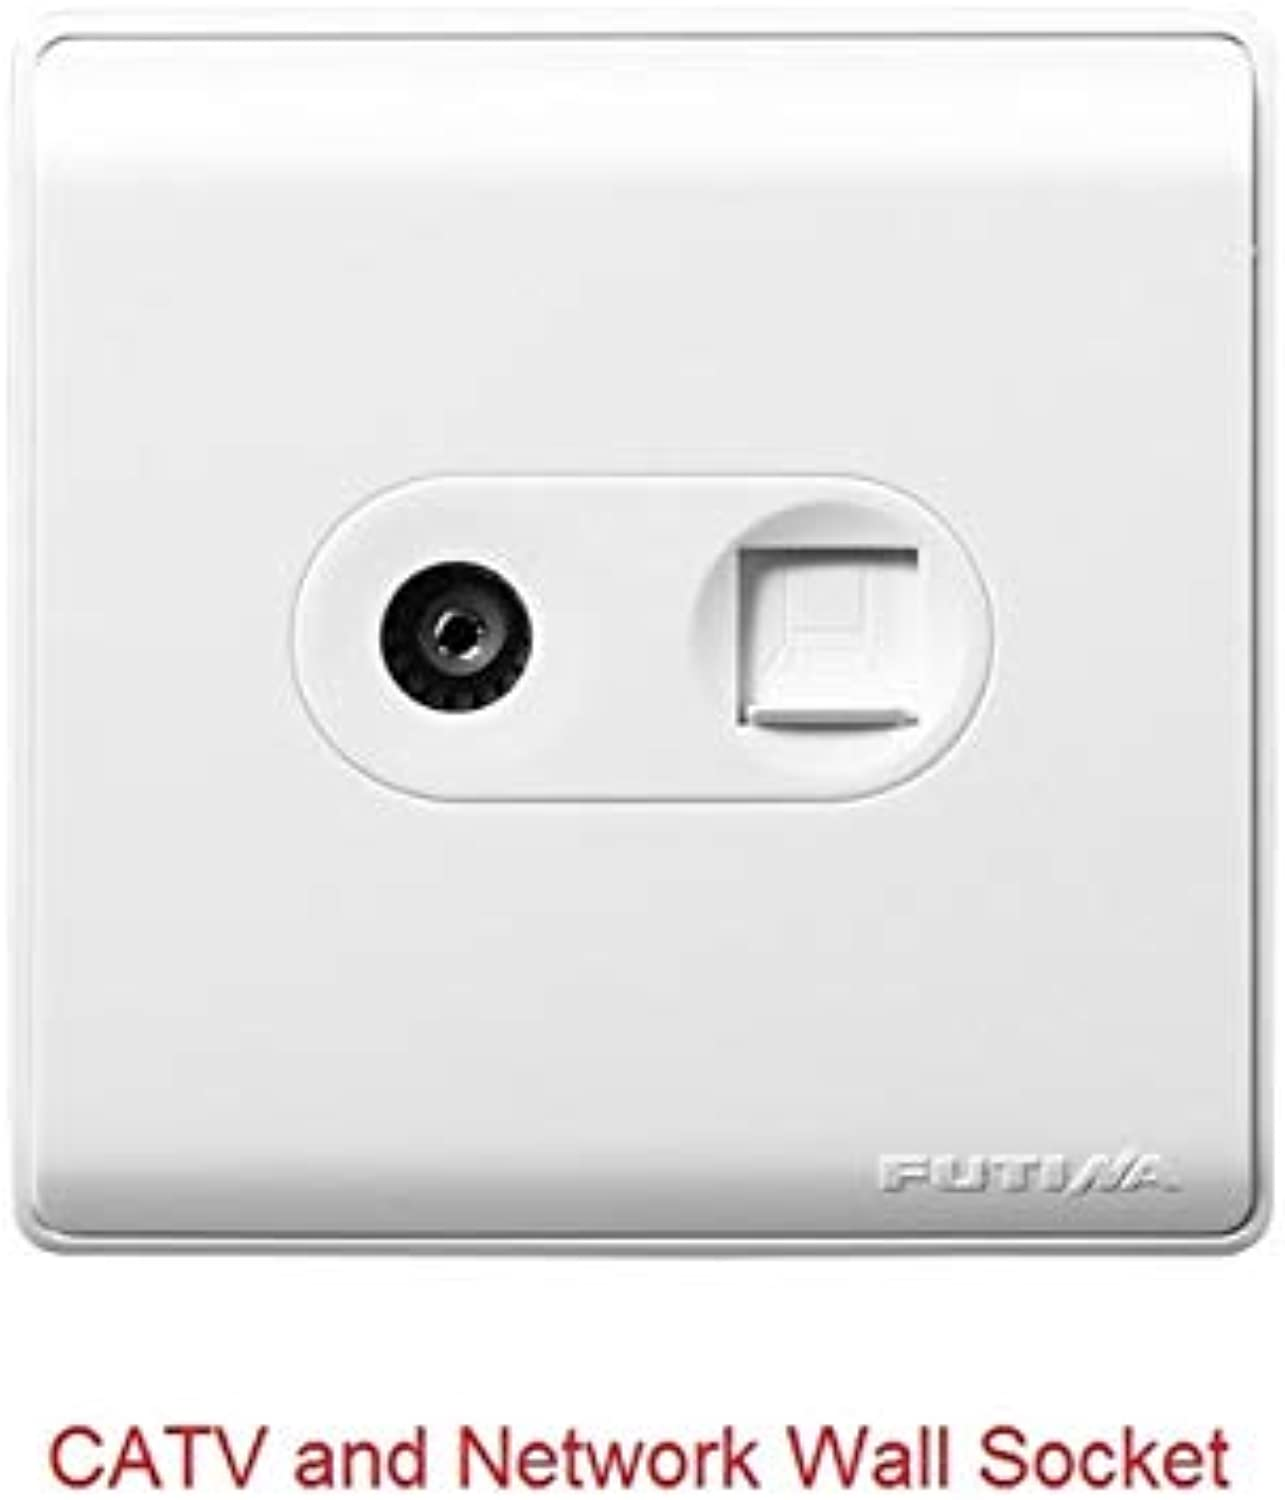 High Quality Telephone Network CATV Wall Socket Retardant PC Material 86mm86mm  (color  TV and Network)